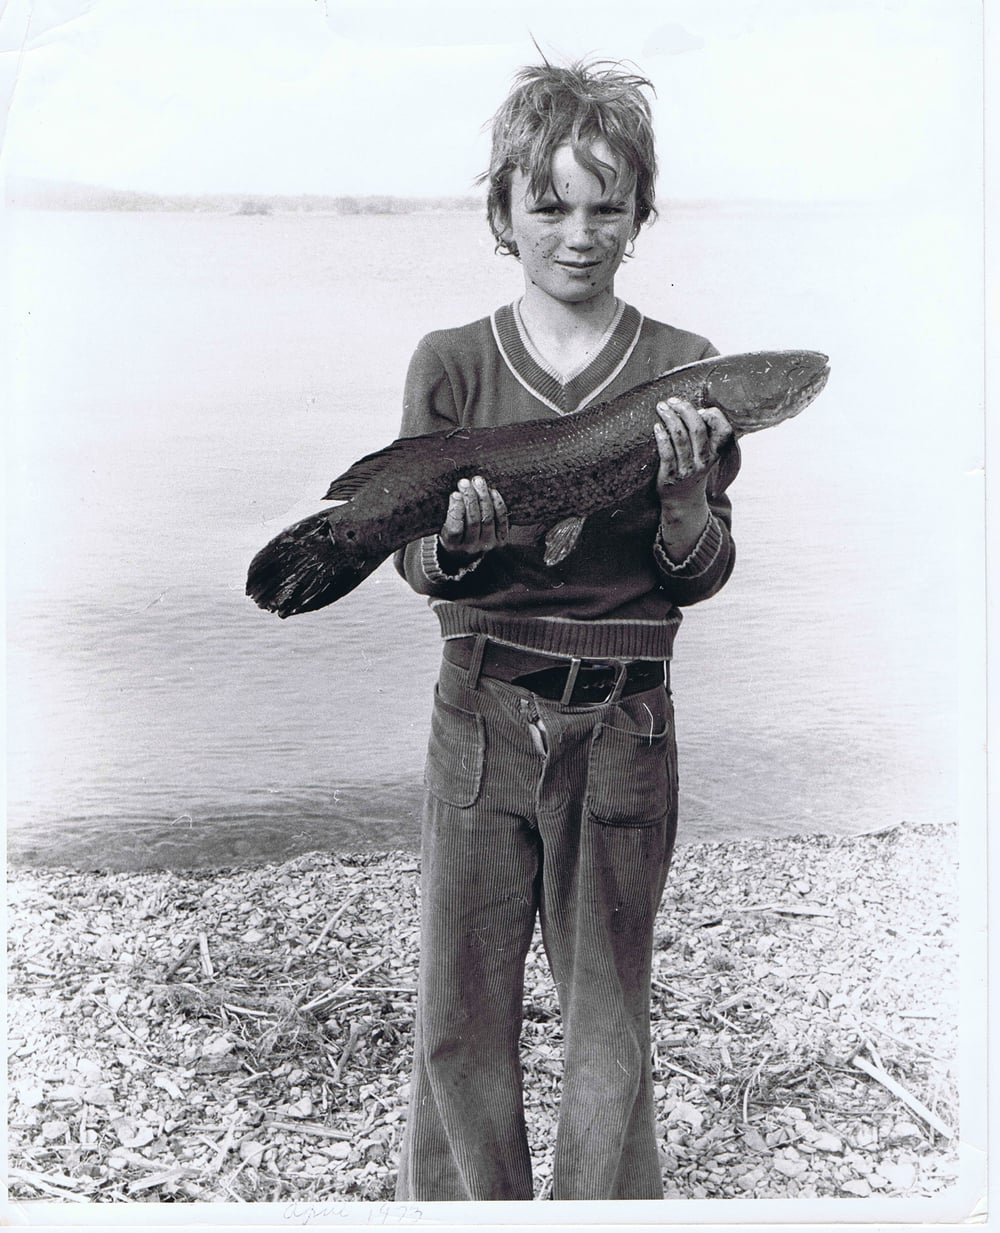 One of many memories Mark Mattson has growing up on Wolfe Island where he became familiar with Lake Ontario and St. Lawrence River waters. (Image via Lake Ontario Waterkeeper)